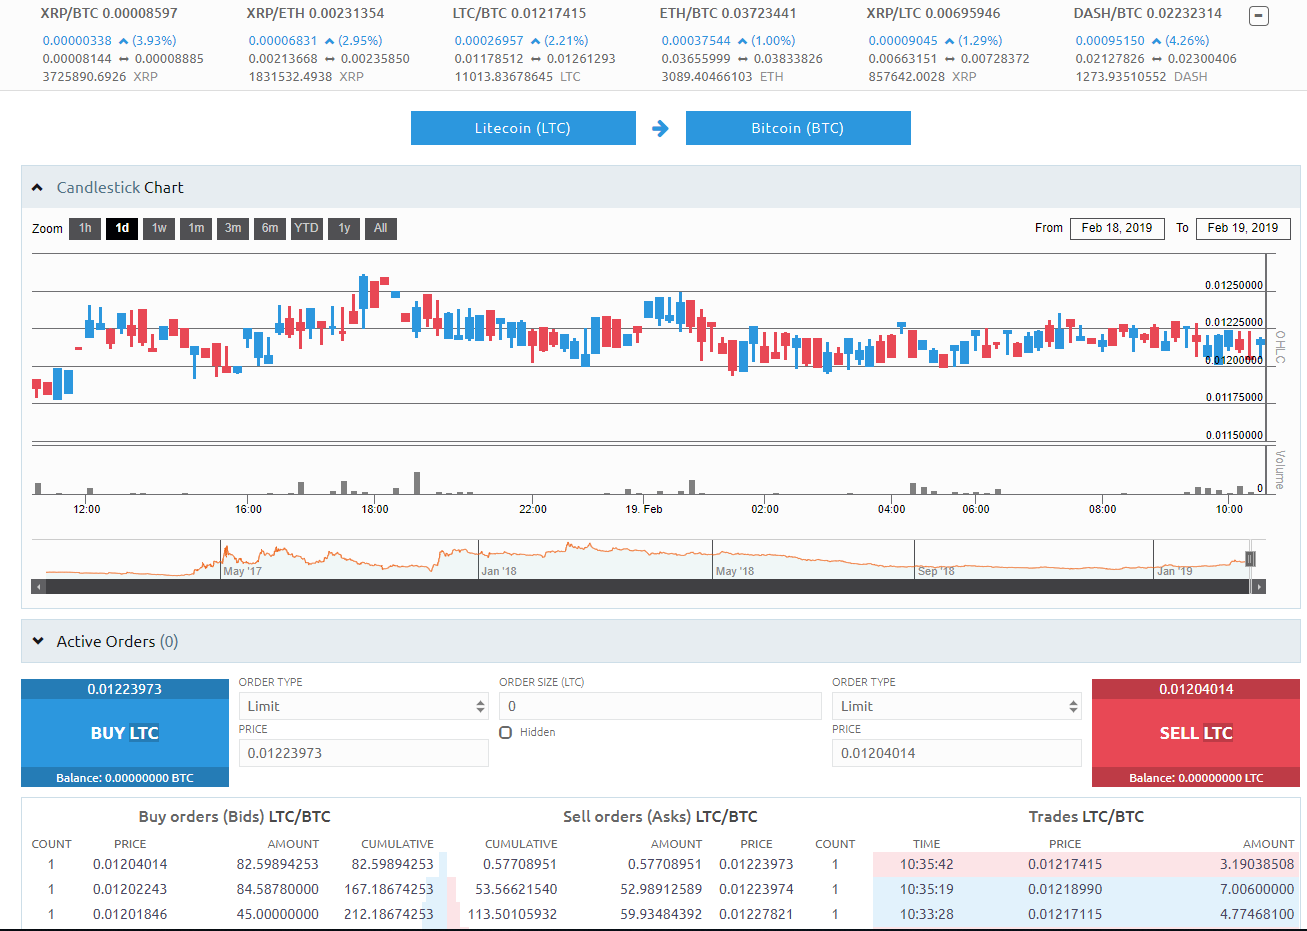 Anybits Trading View